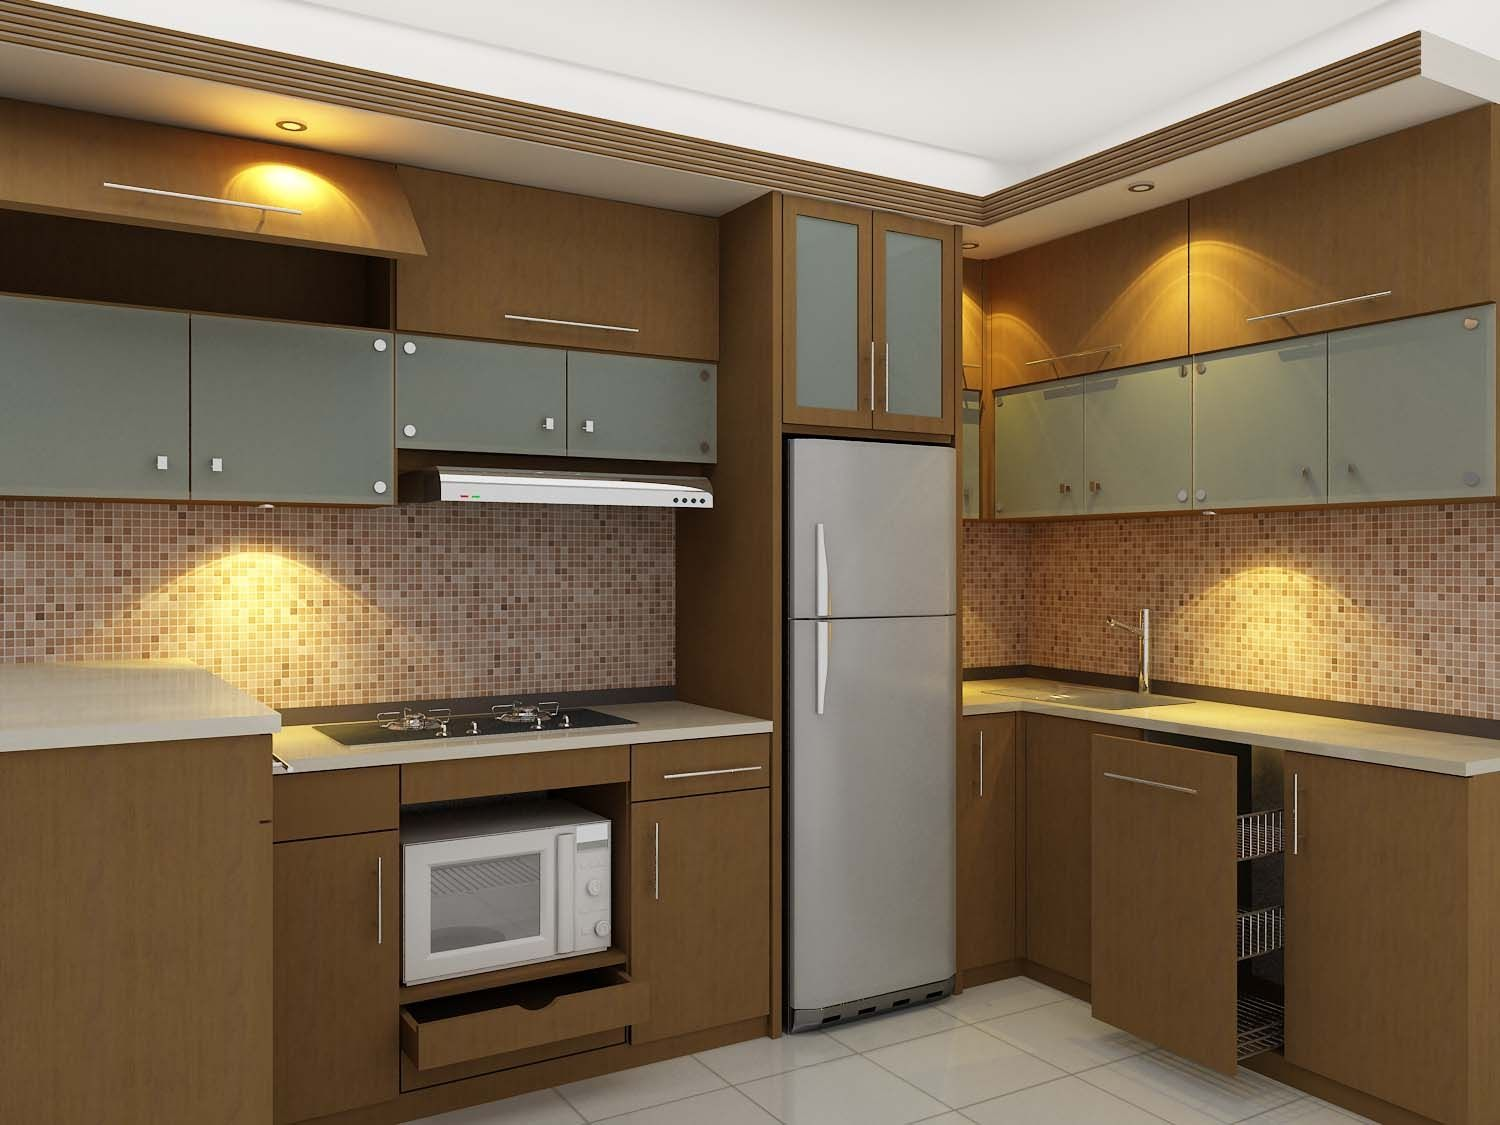 Desain kitchen set minimalis rumah pinterest kitchen for Kitchen setting pictures